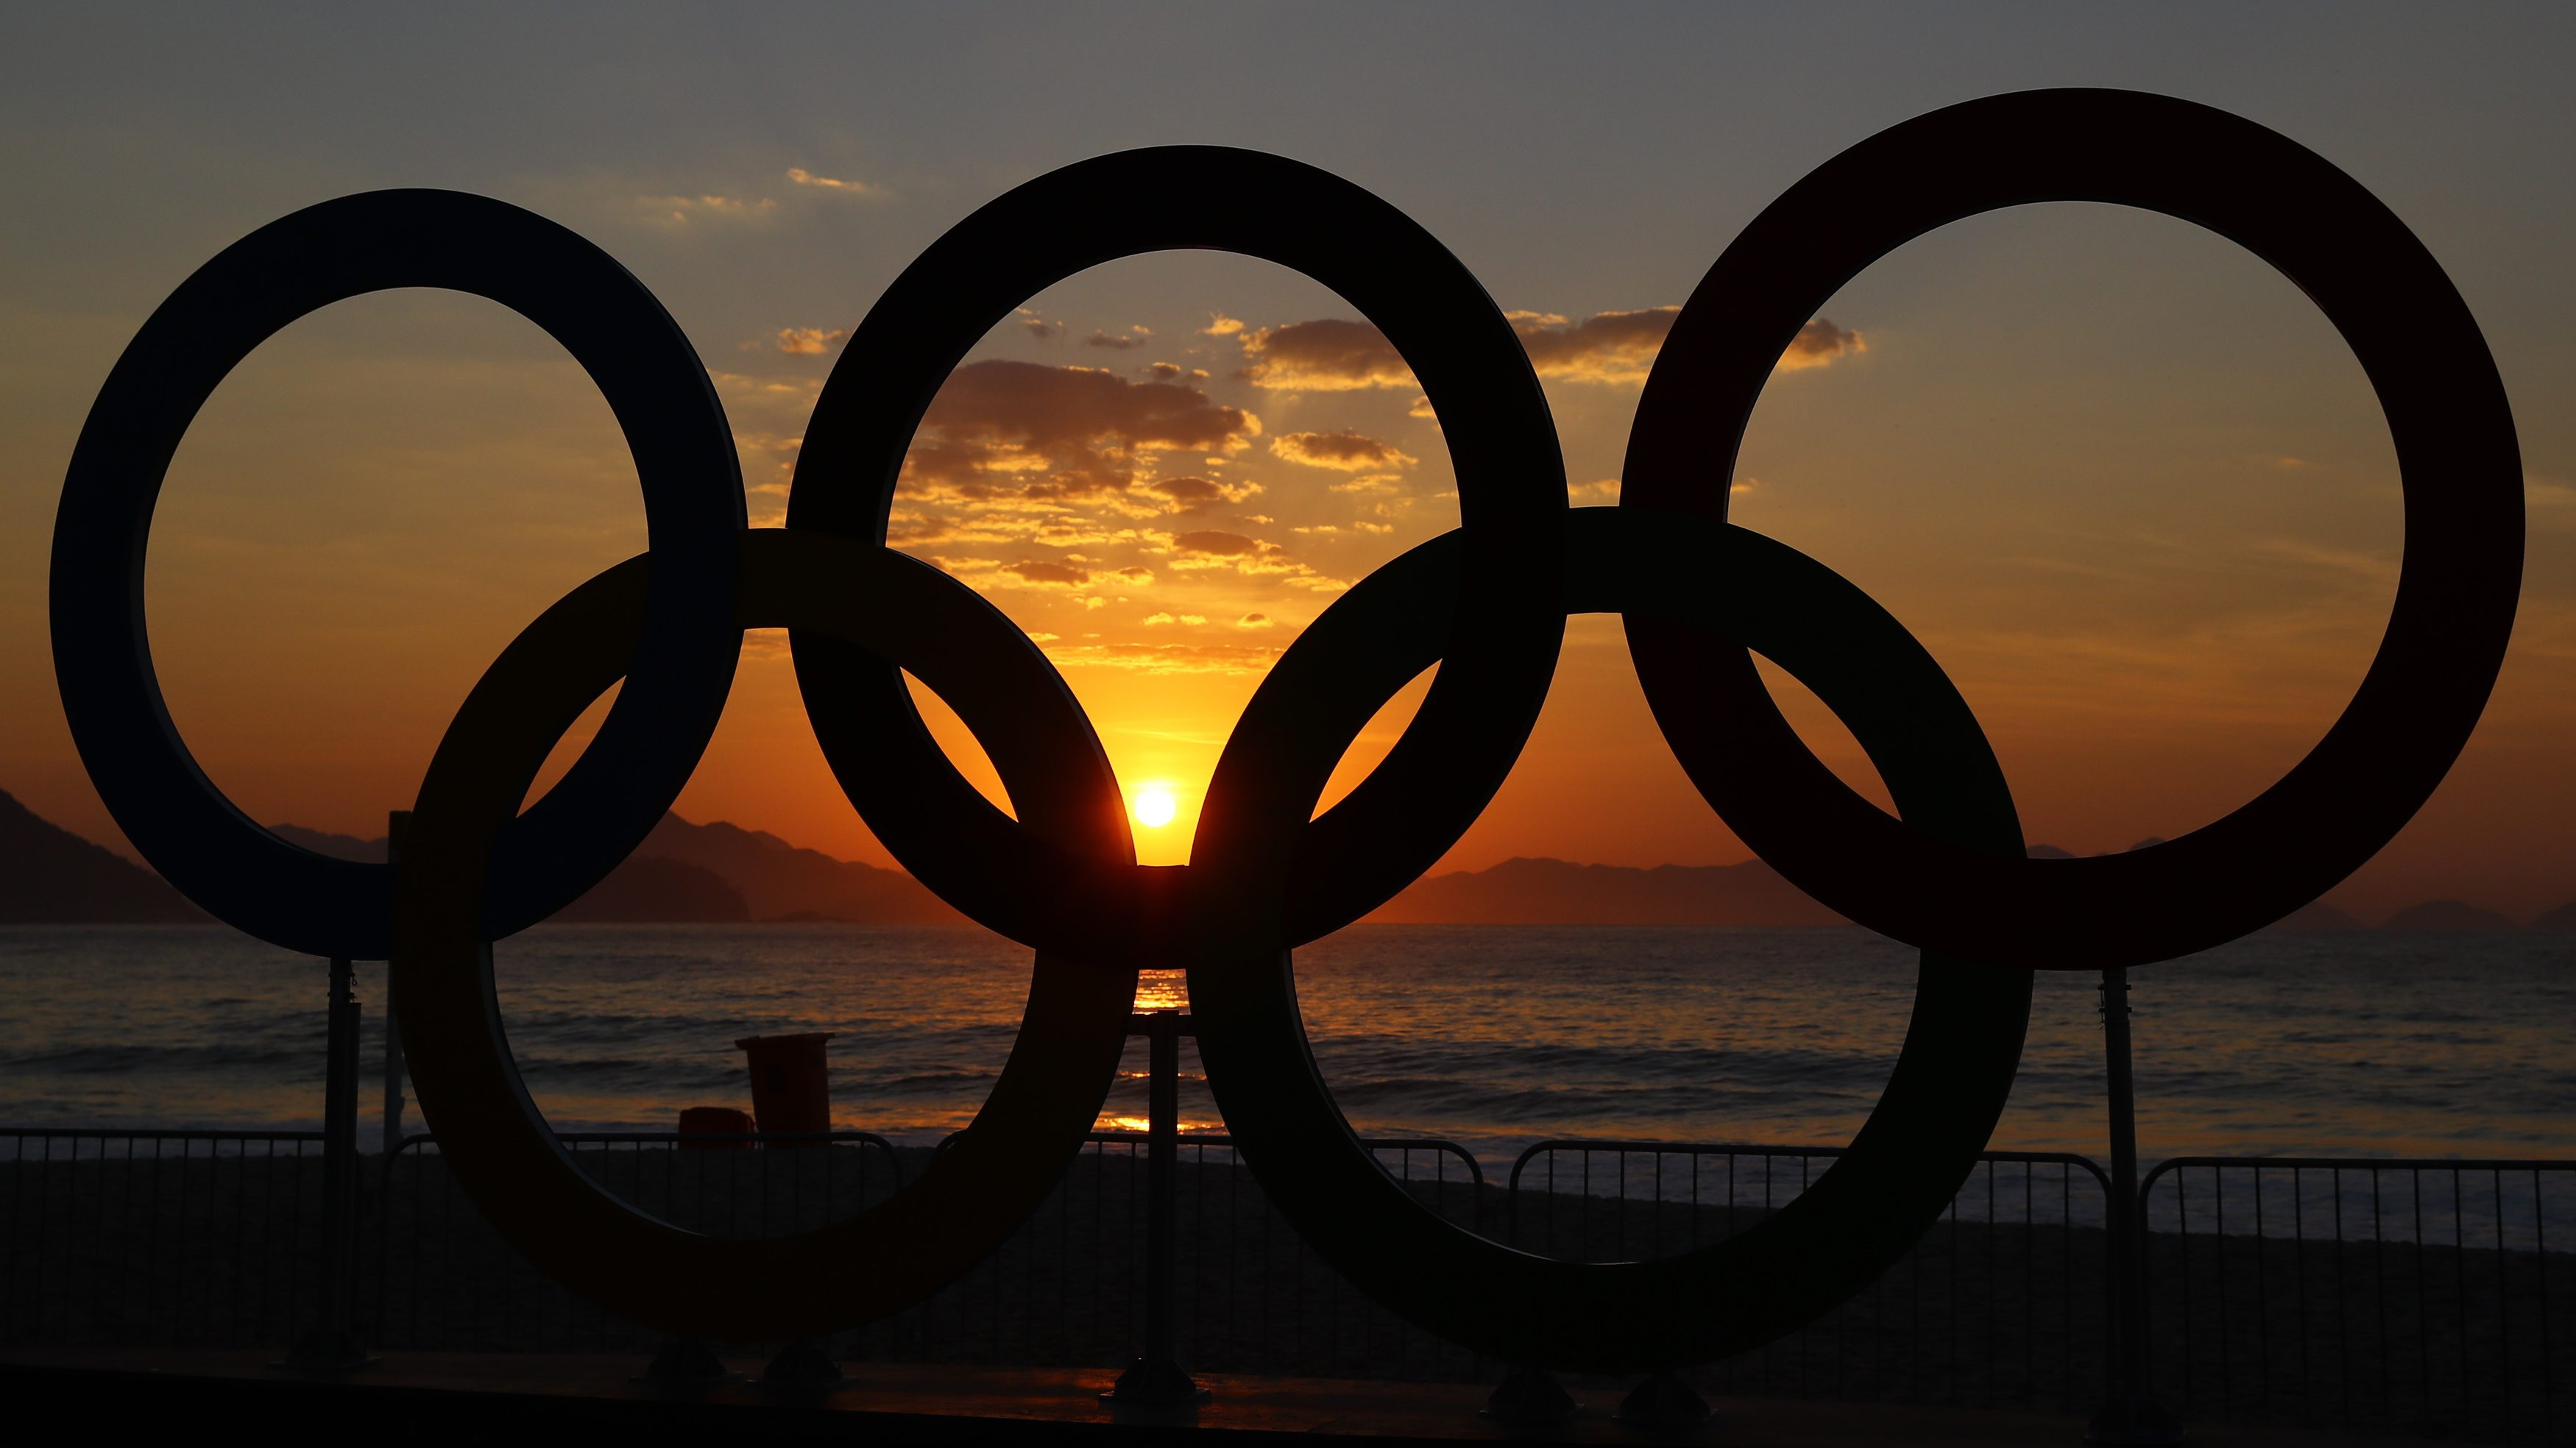 2016 Rio Olympics - Cycling Road - Final - Men's Road Race - Fort Copacabana - Rio de Janeiro, Brazil - 06/08/2016. The Olympic rings are seen as the sun rises over Fort Copacabana ahead of the Men's Road Race.     REUTERS/Paul Hanna  - RTSLDJV